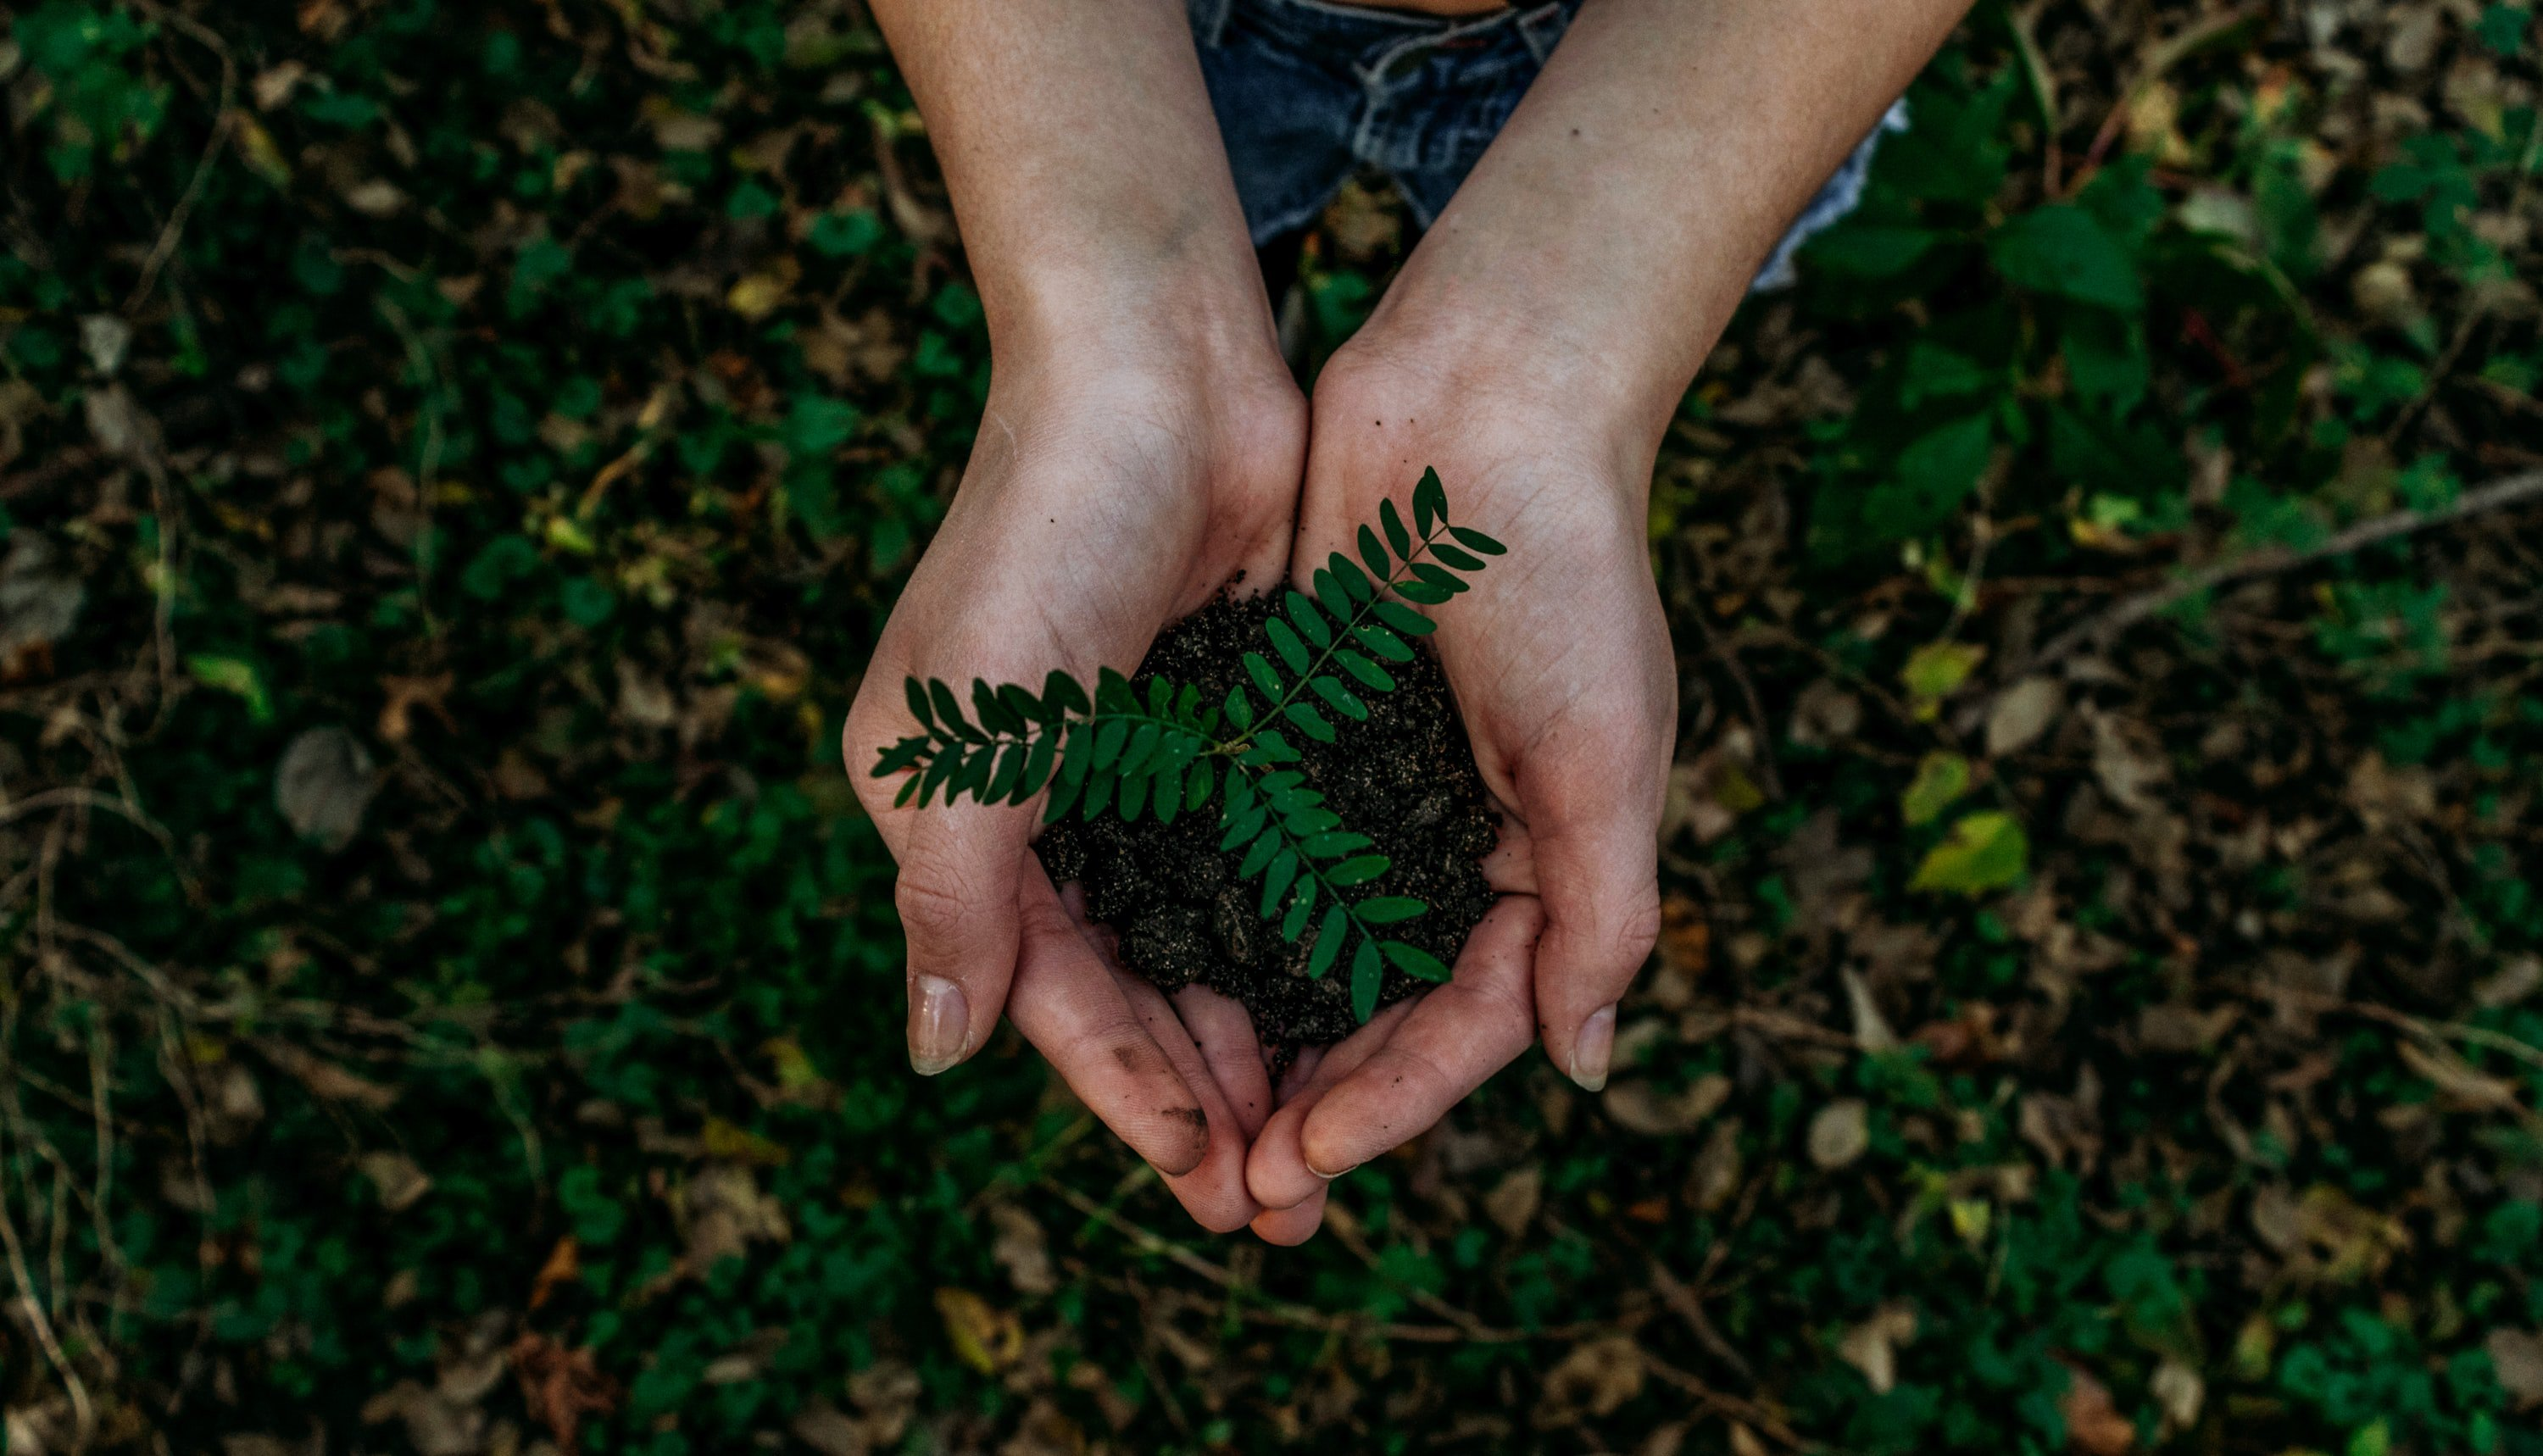 Why Should Pentecostals Care for Creation?